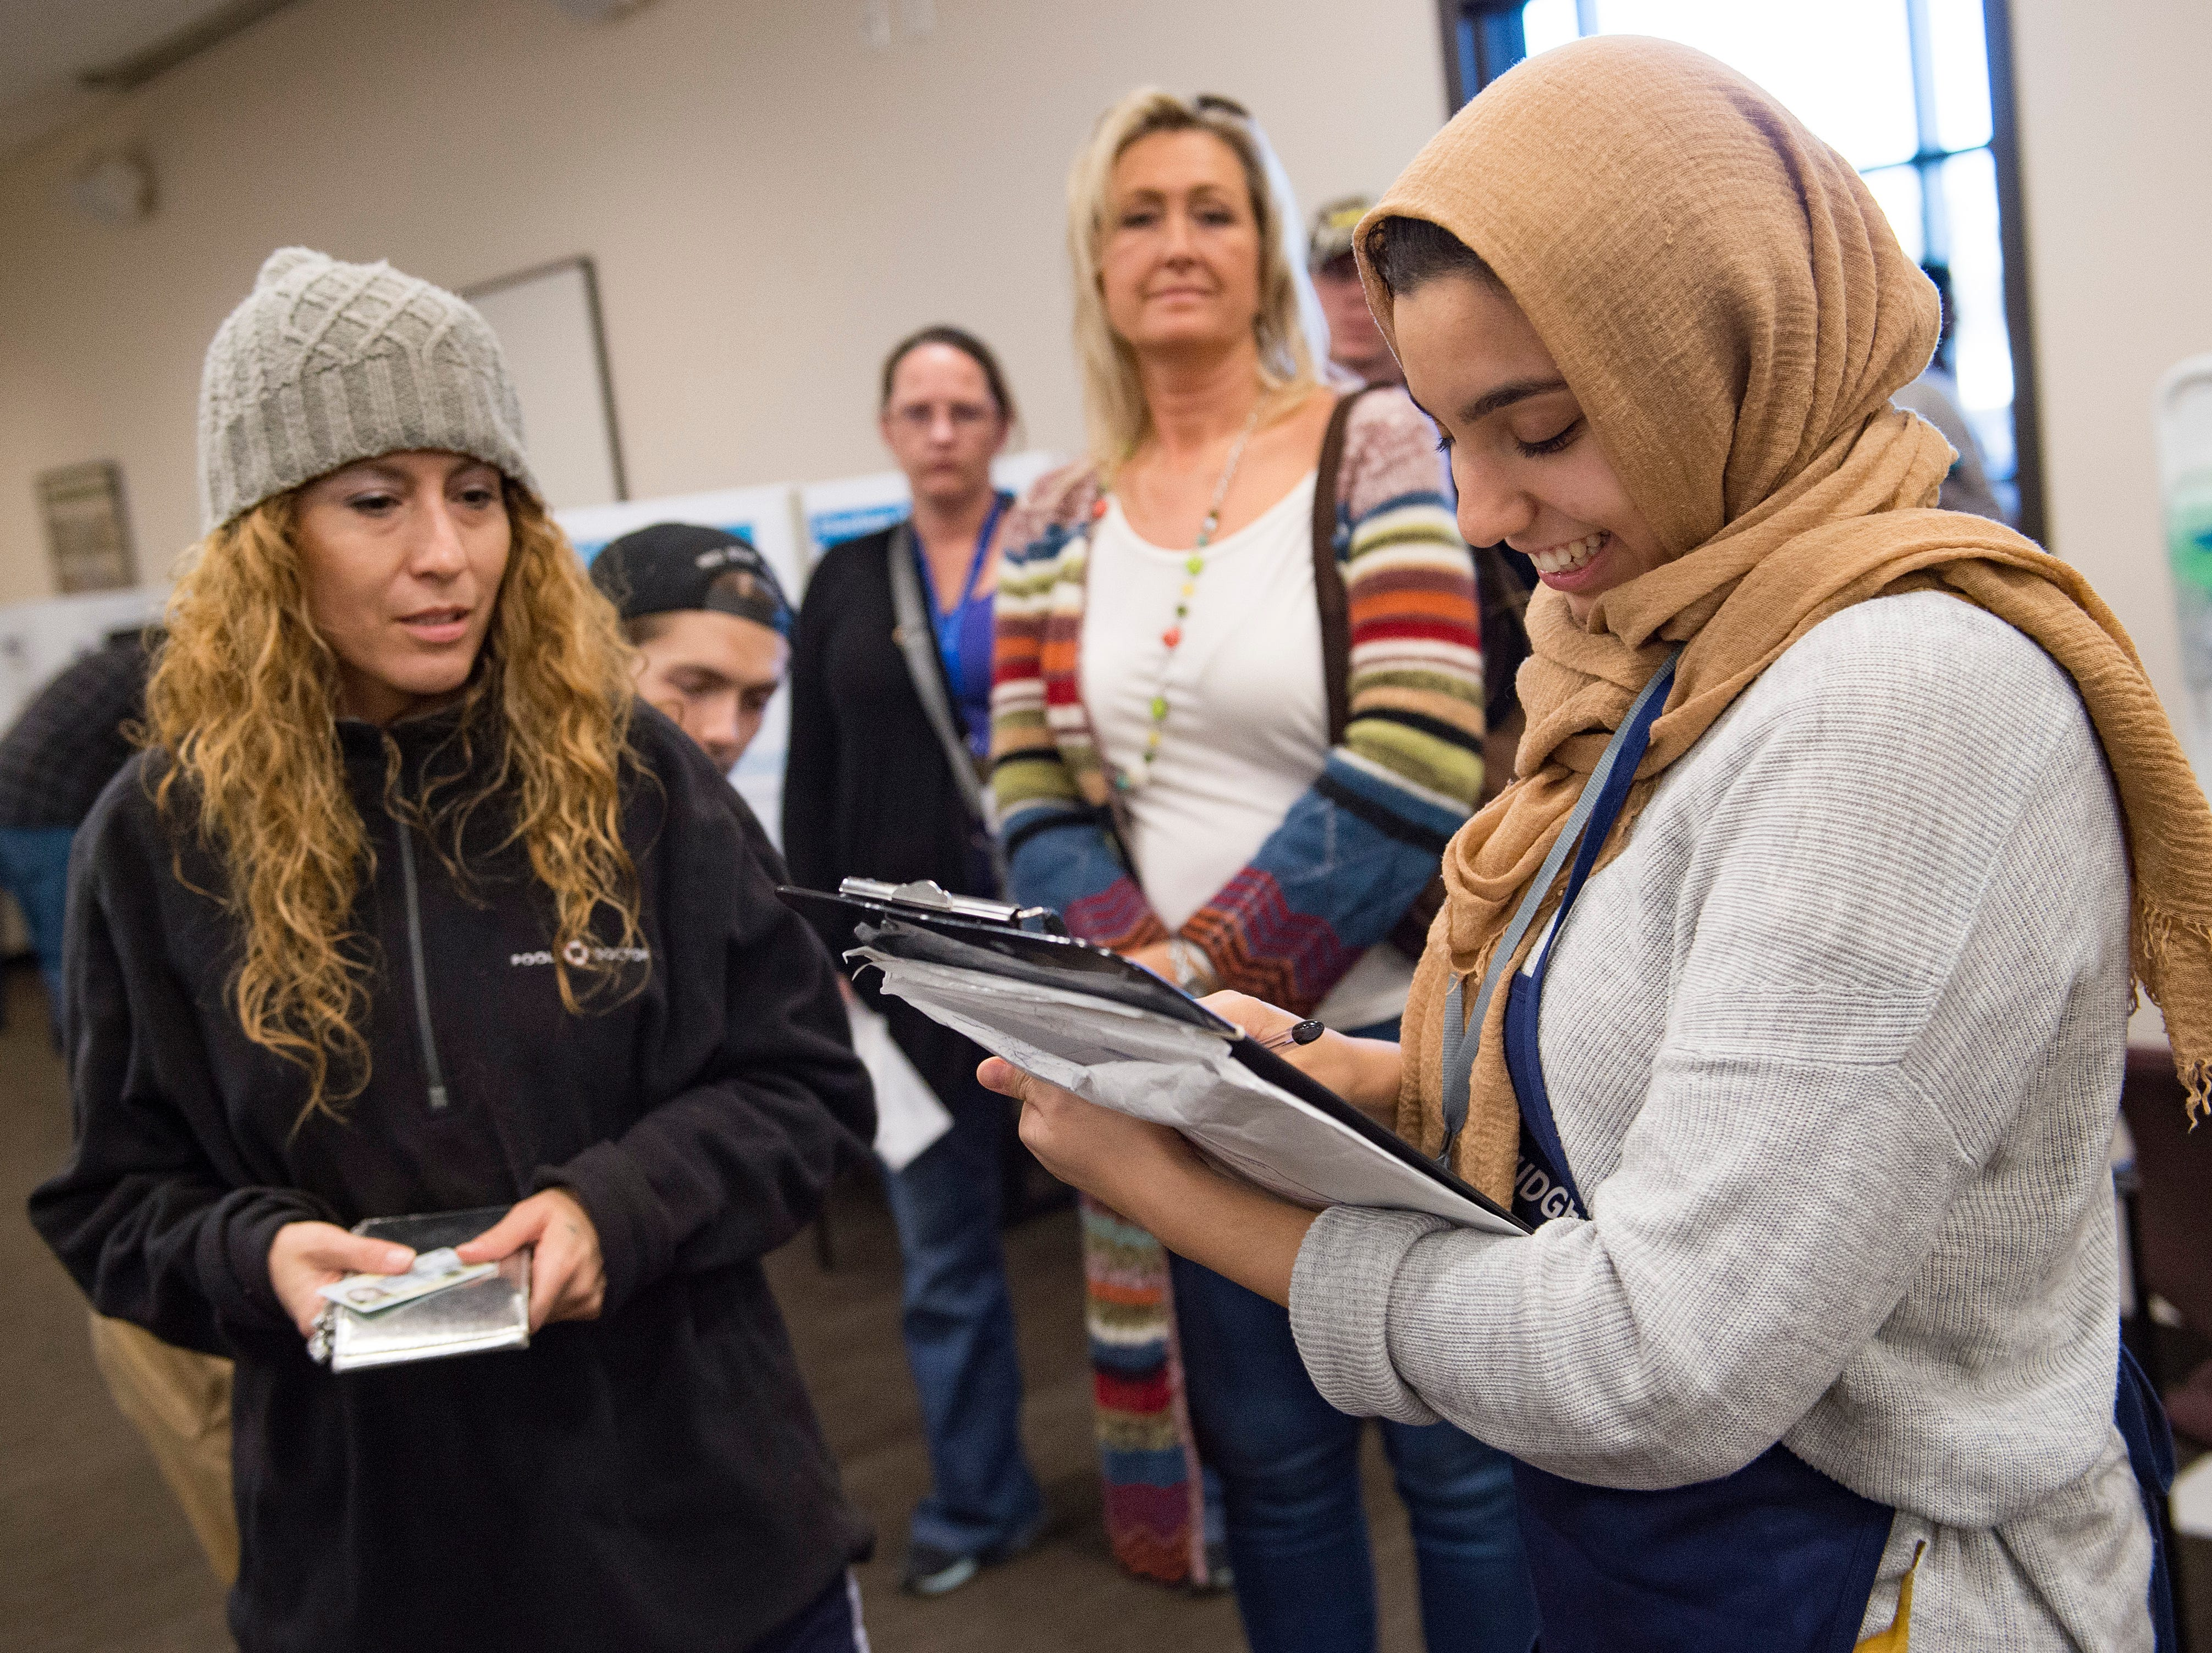 Volunteer Malak Shawesh records voter wait times as people line up to cast their ballot at the Larimer County Courthouse on Election Day, Monday, November 6, 2018. Wait times hovered around 15 minutes by 3 p.m. on Election Day.